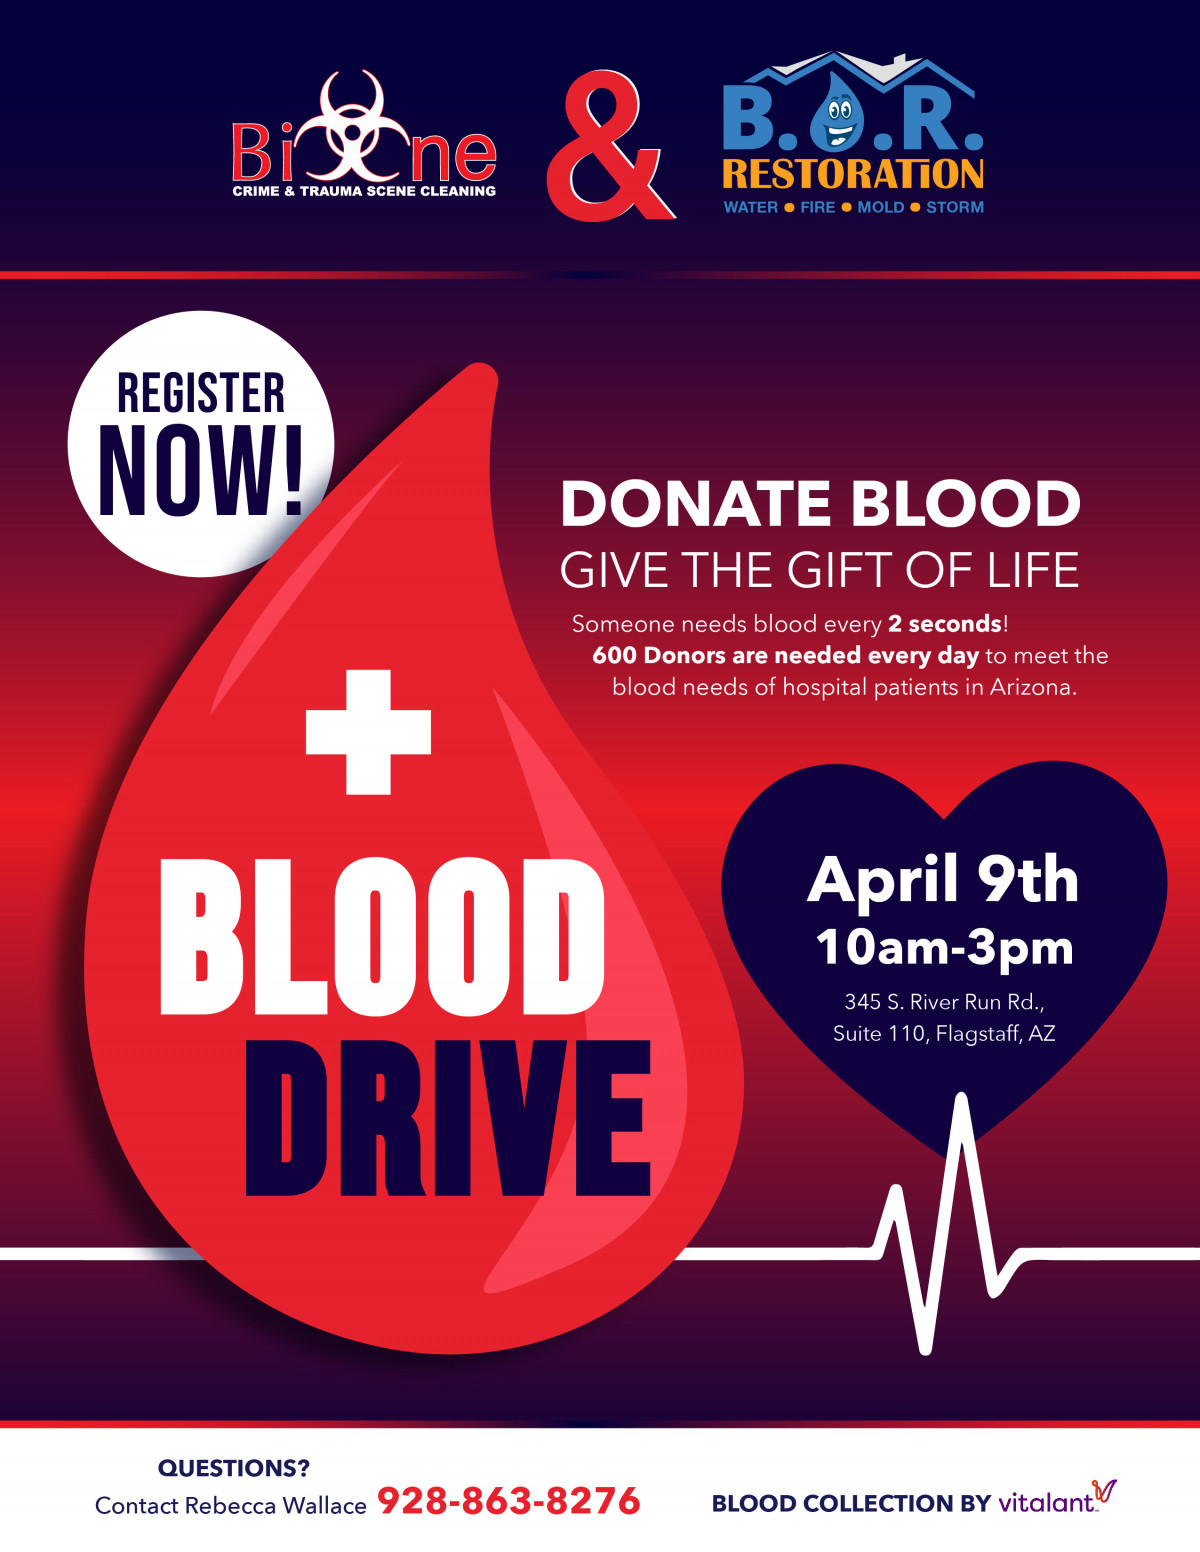 Save a Life During The COVID-19 Pandemic and Donate Blood